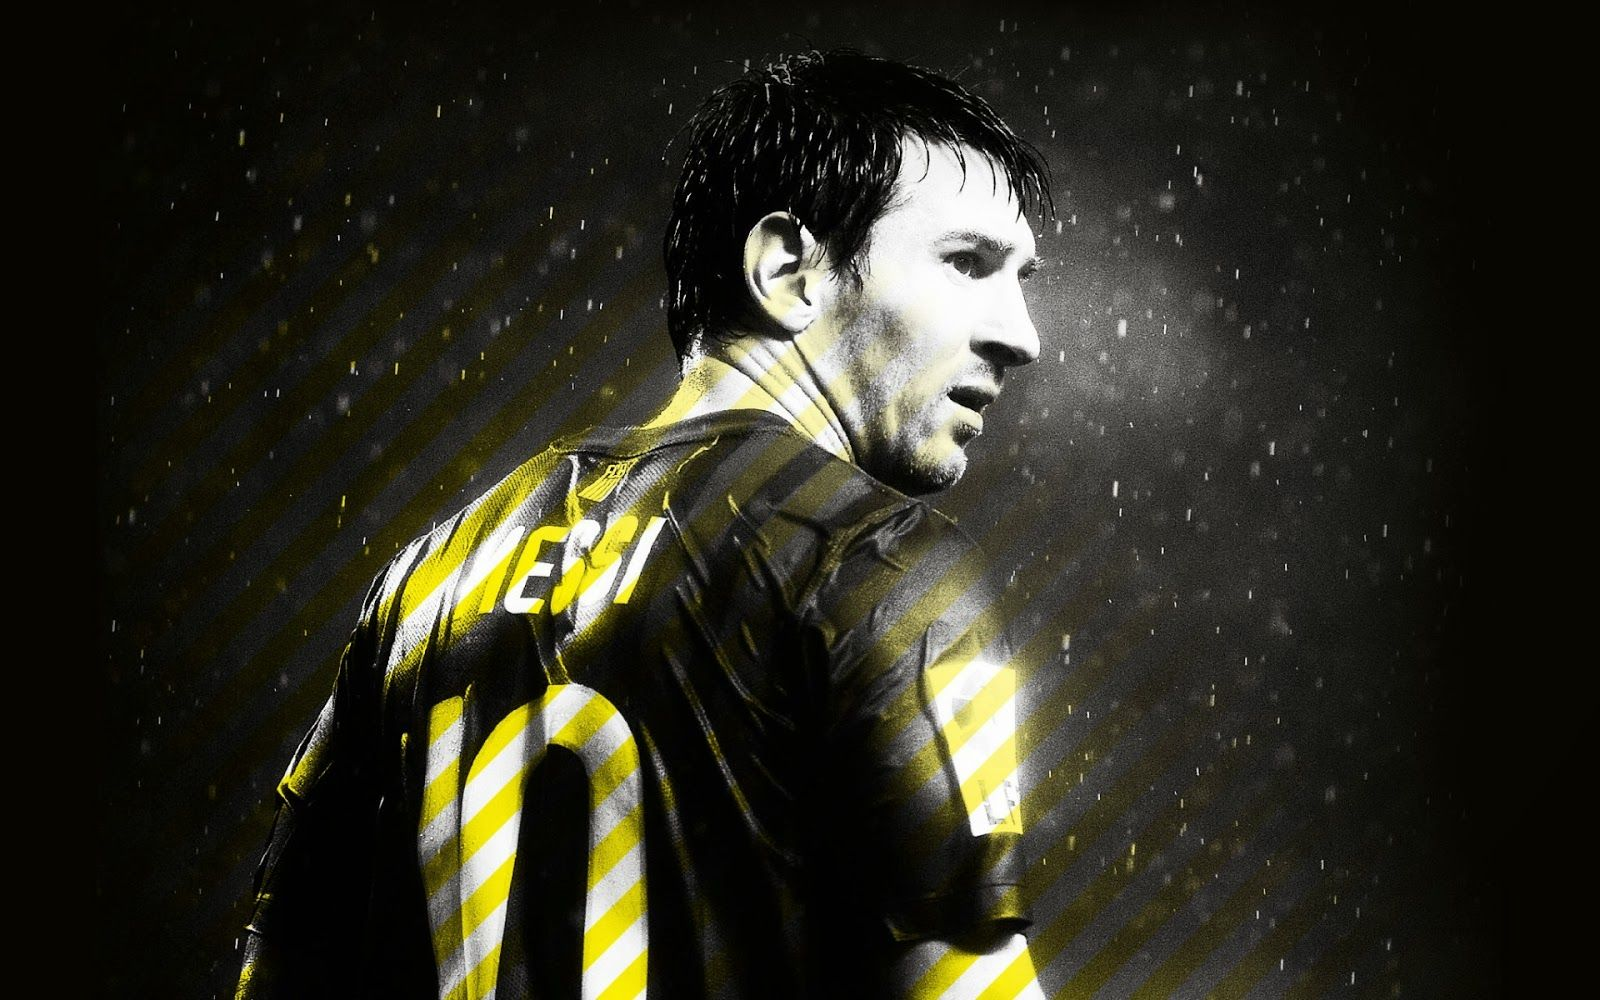 Messi wallpaper 2014 hd fifa worldcup pinterest messi and messi wallpaper 2014 hd voltagebd Choice Image